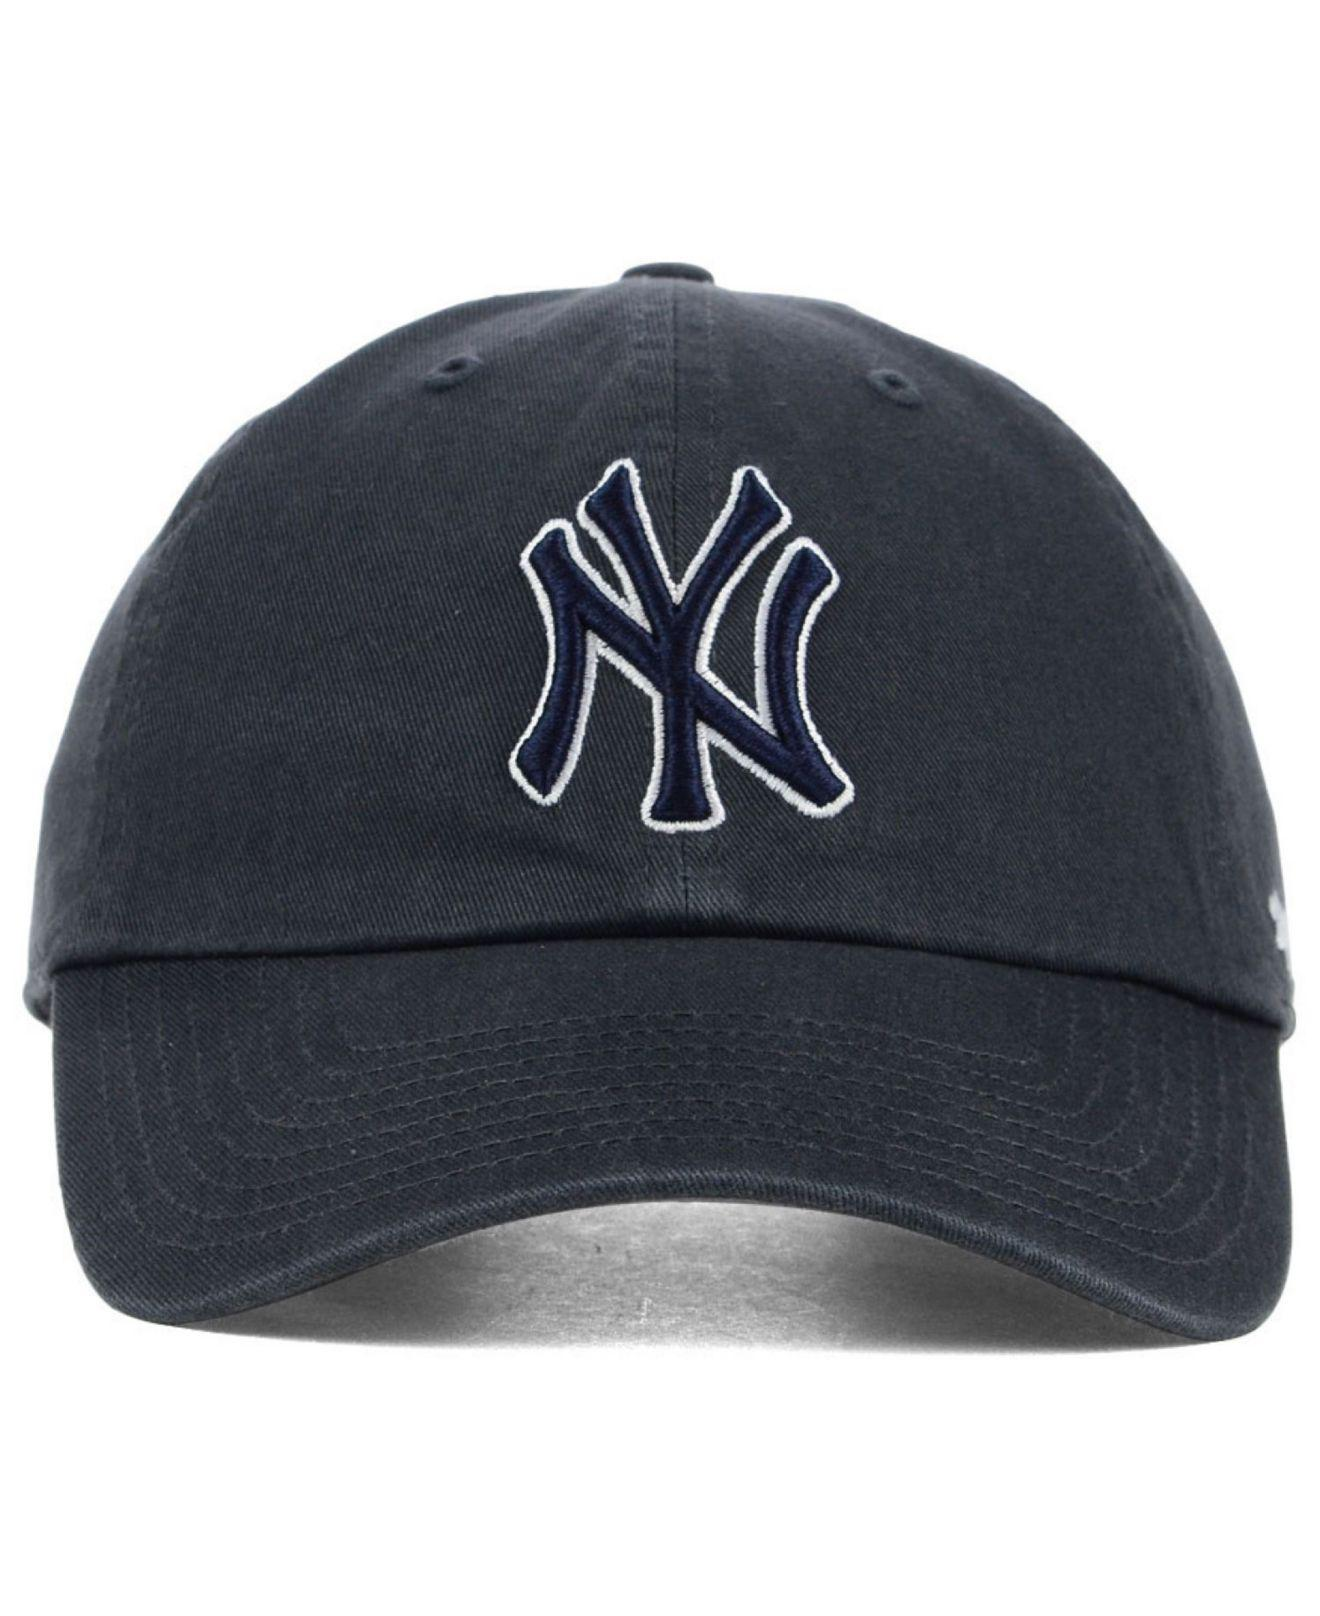 Lyst - 47 Brand New York Yankees Clean Up Cap in Gray for Men d39e08f3a